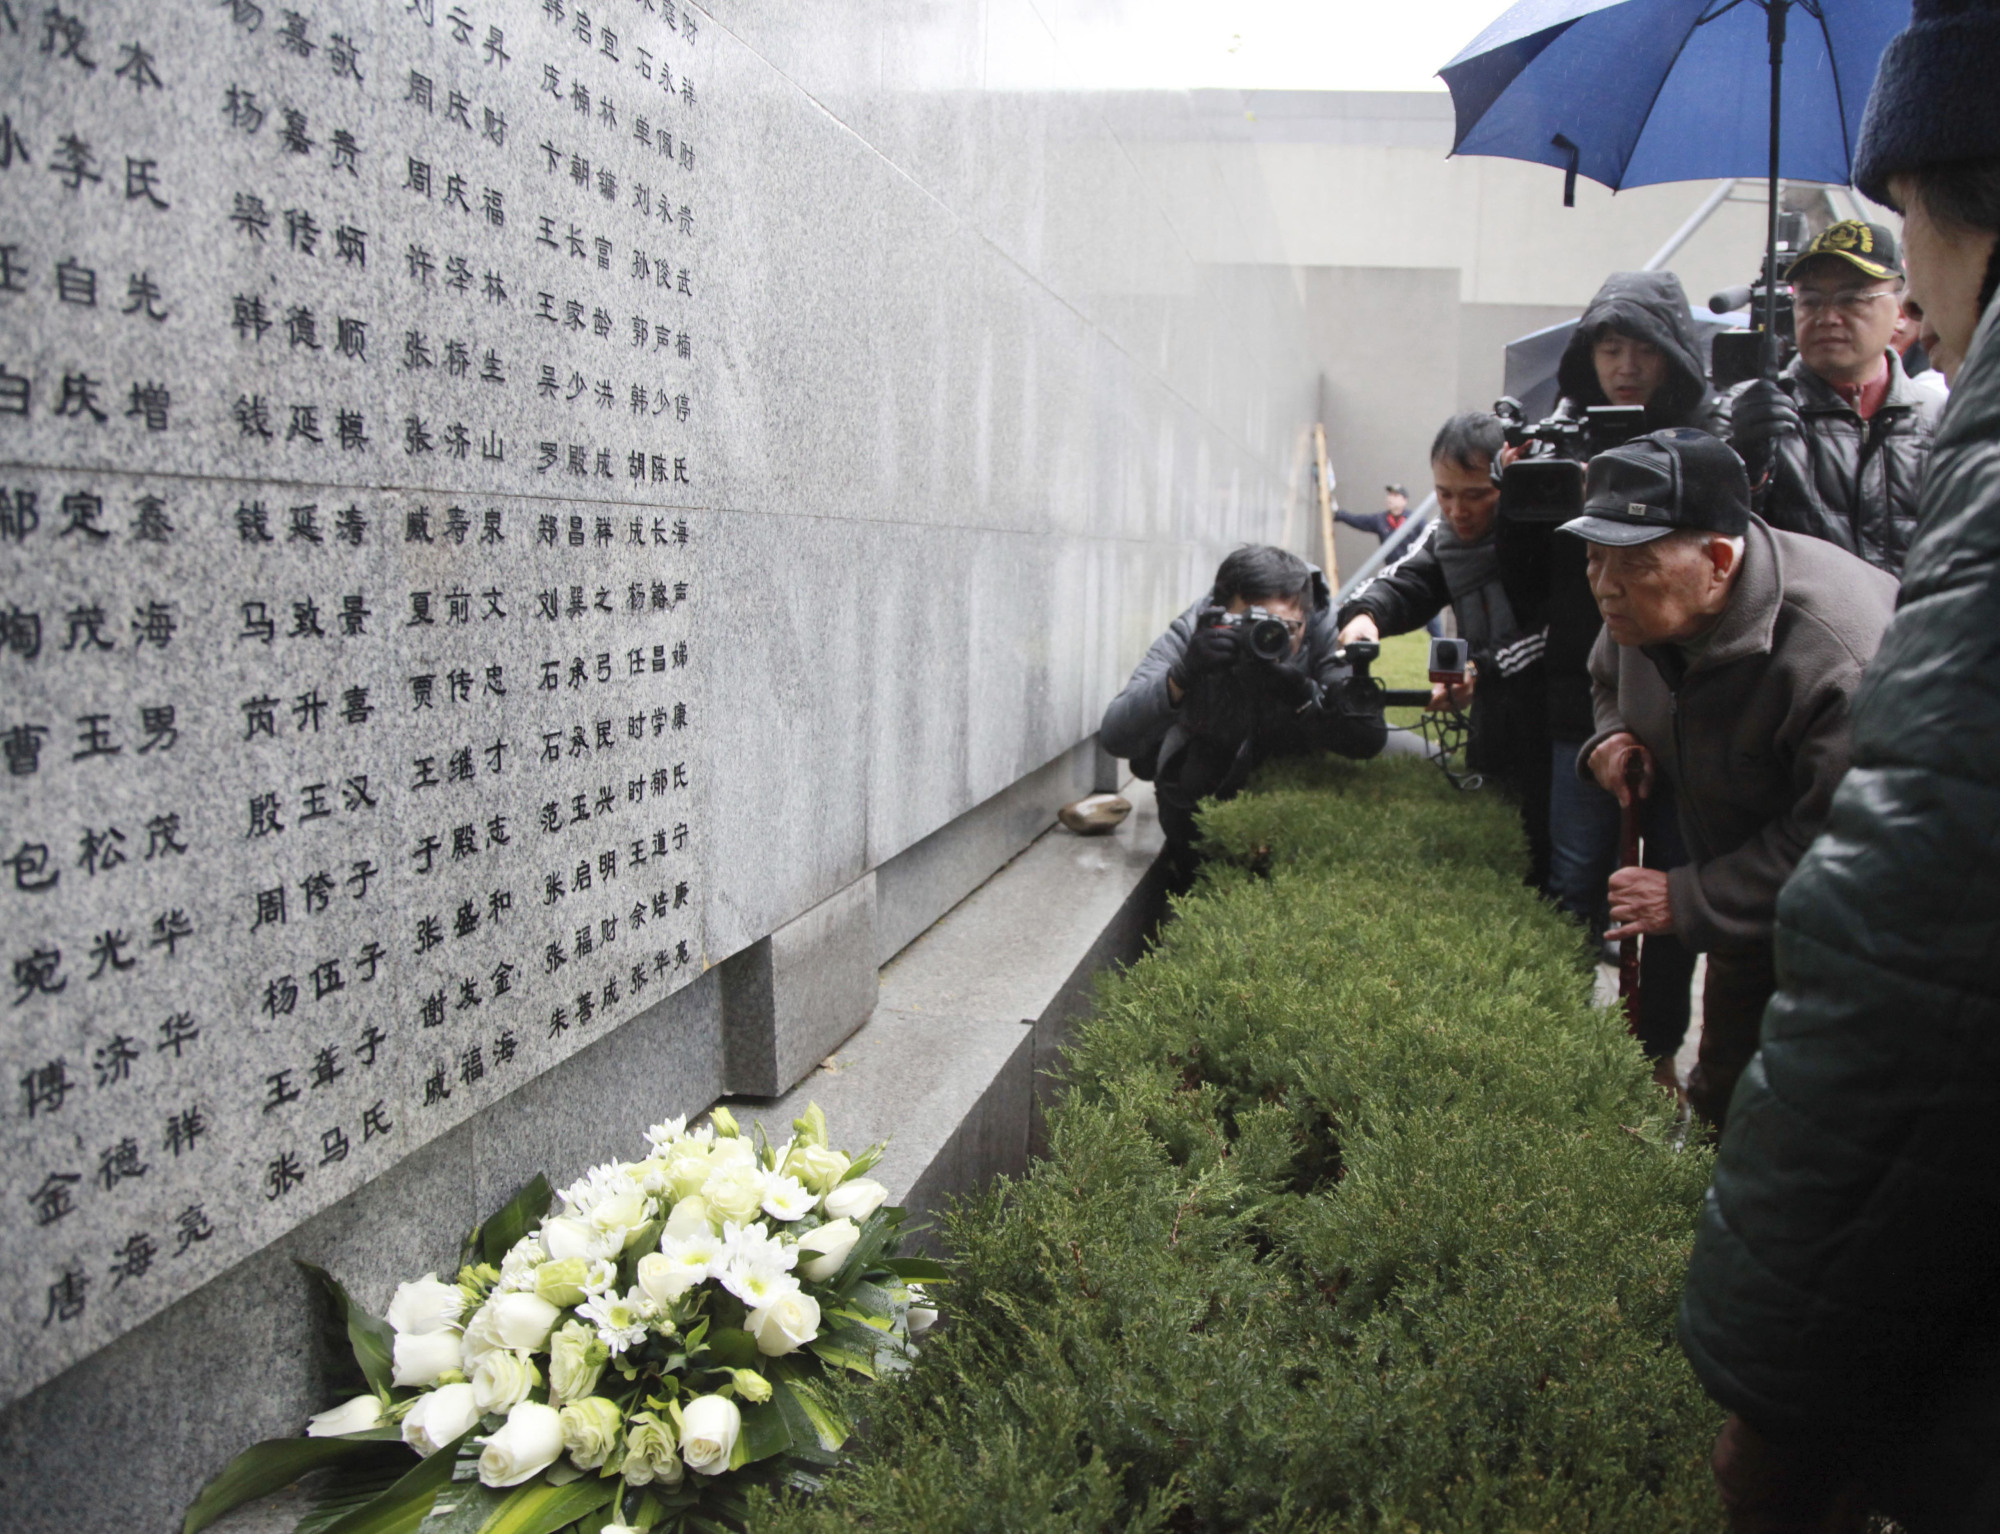 A man mourns a relative whose name was recently added to the memorial wall in Nanjing on Dec. 10. The wall  now contains the names of 10,664 confirmed victims. | YAO JUN — IMAGINECHINA